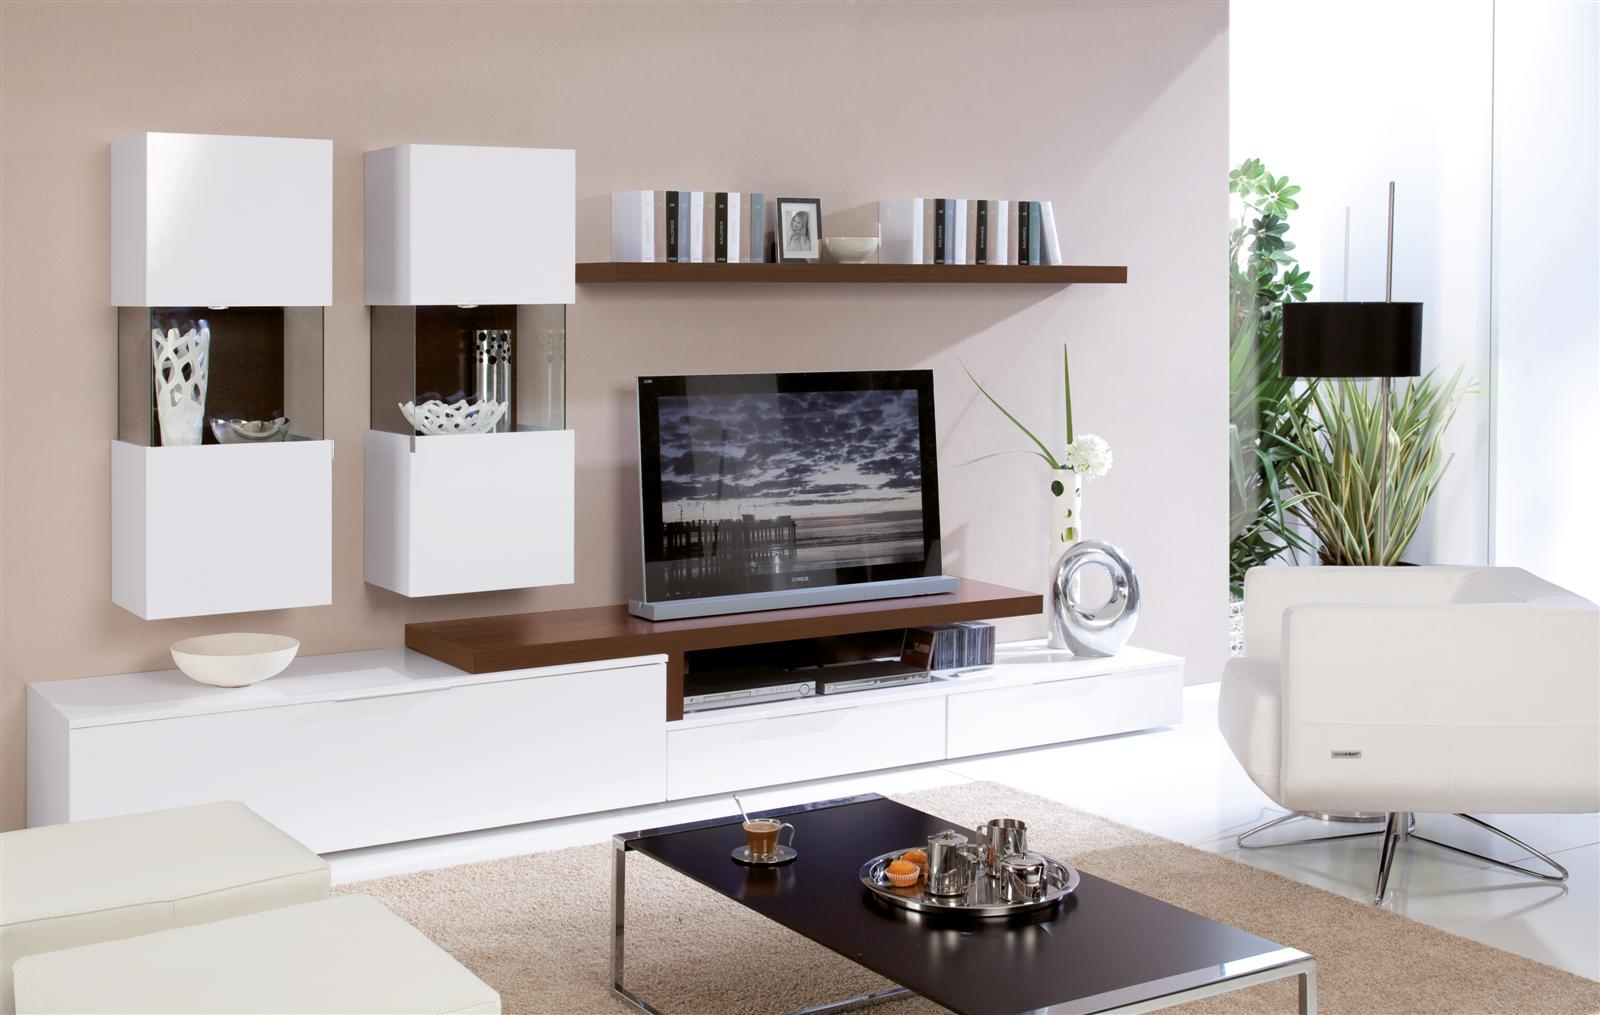 Wall Unit Design Images : Modern tv unit design ideas for bedroom living room